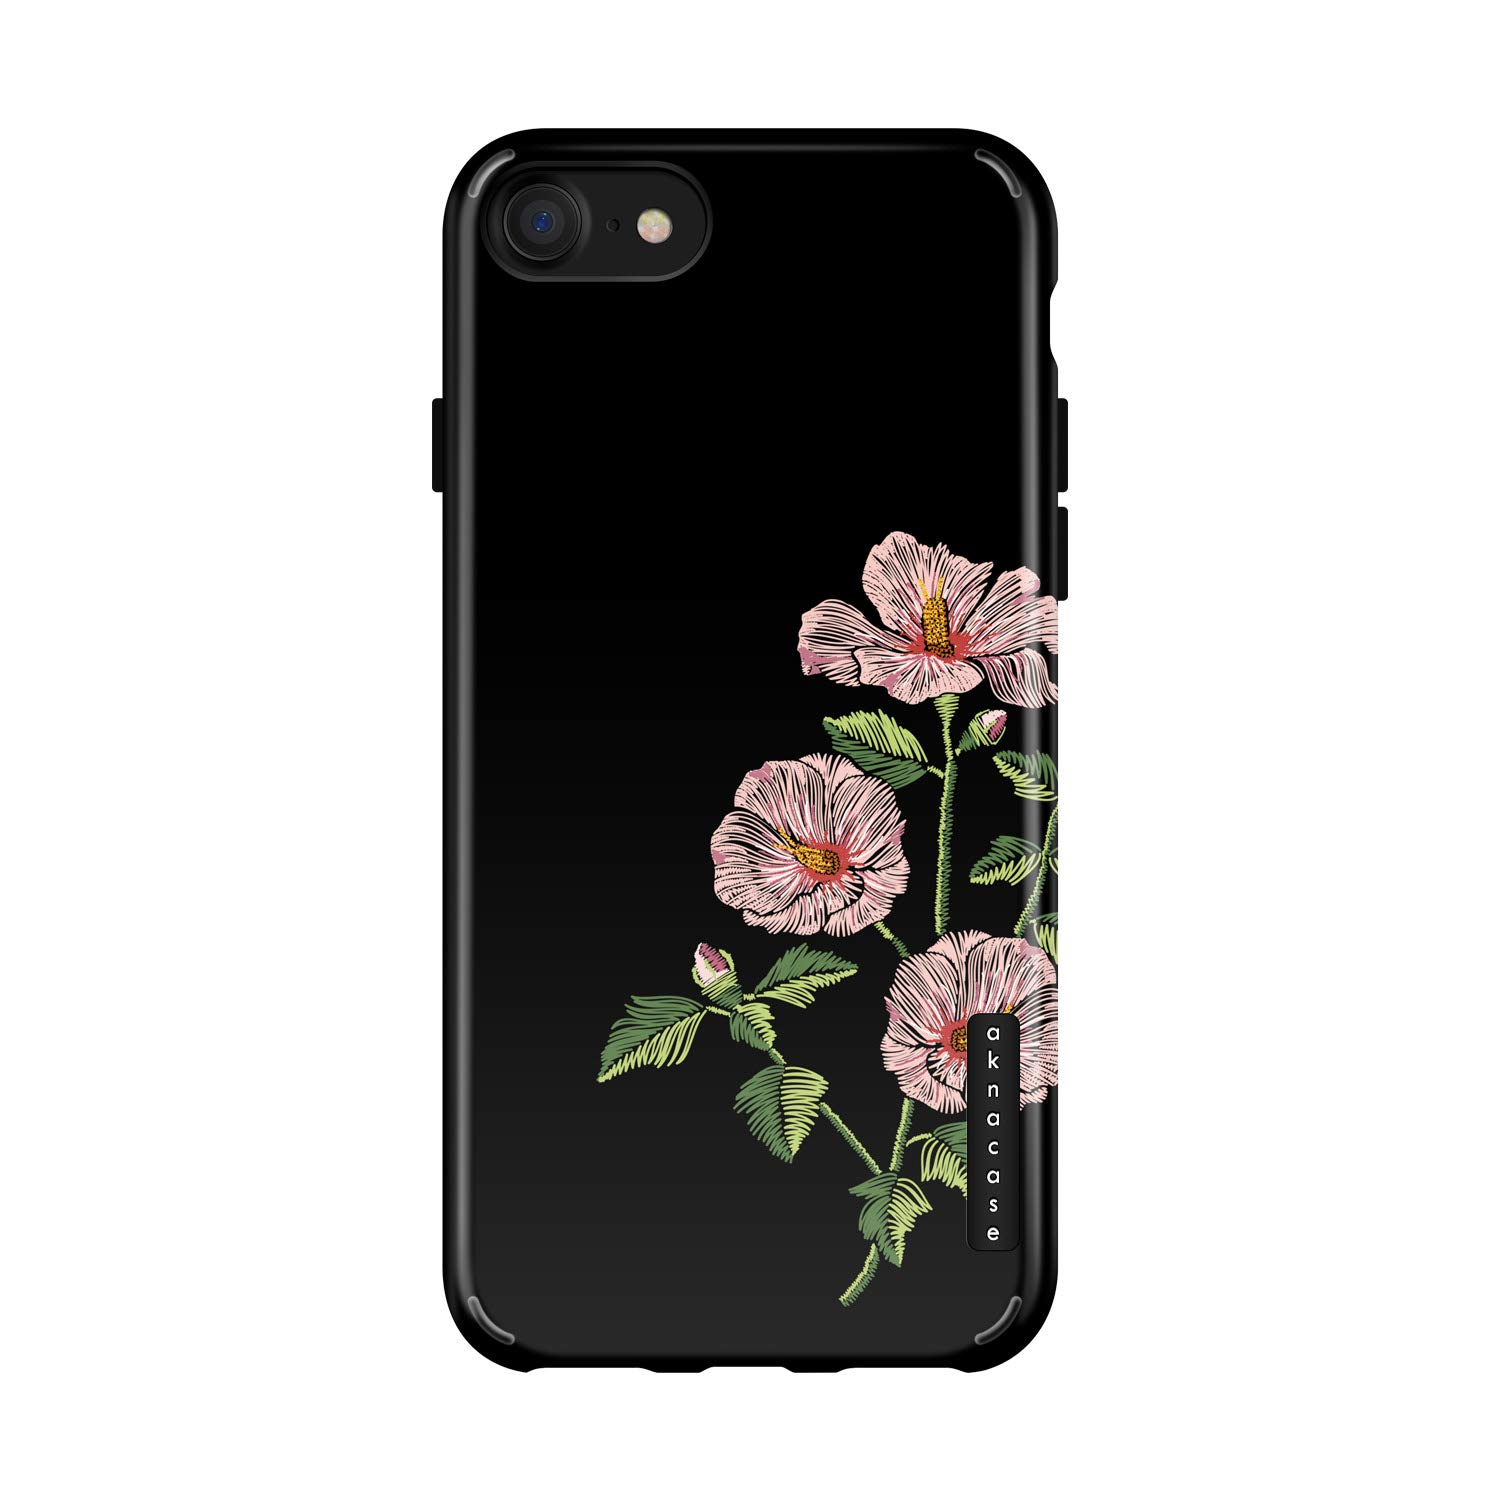 iPhone 8 & iPhone 7 Case, Akna Charming Series High Impact Silicon Cover with HD Graphics for iPhone 8 & iPhone 7 (776-C.A)